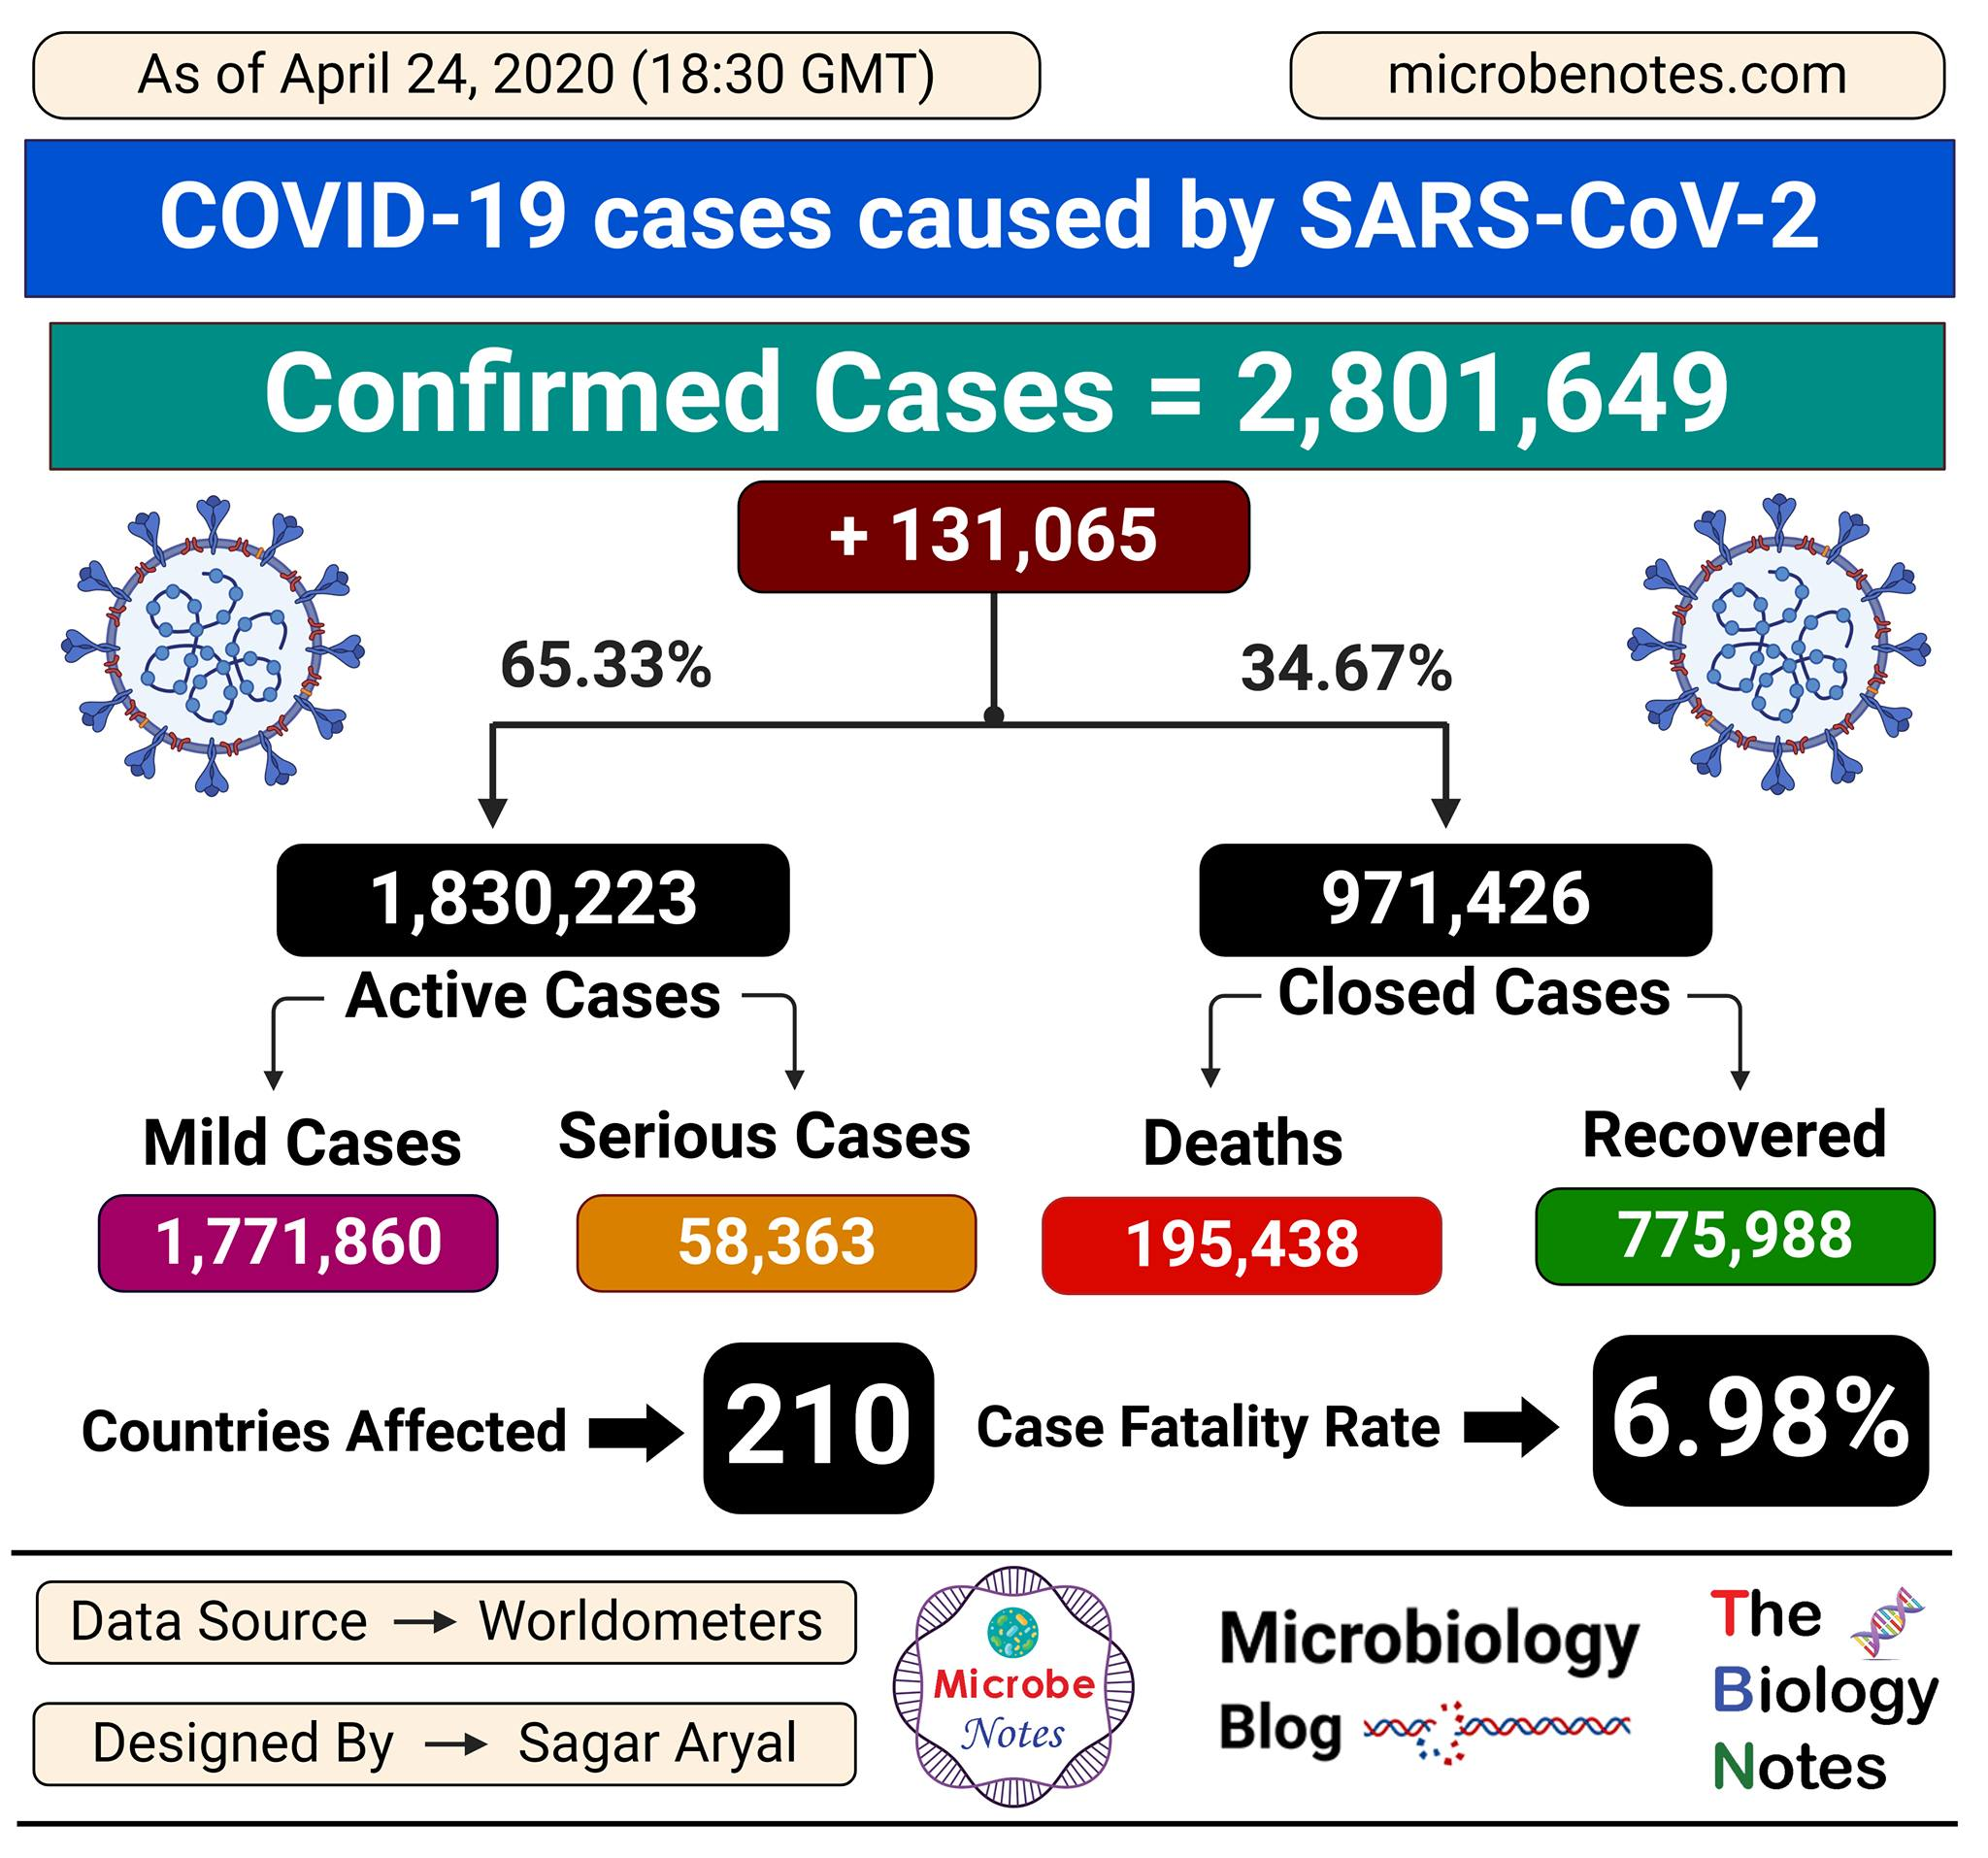 Epidemiology of COVID-19 caused by SARS-CoV-2 as of April 24, 2020